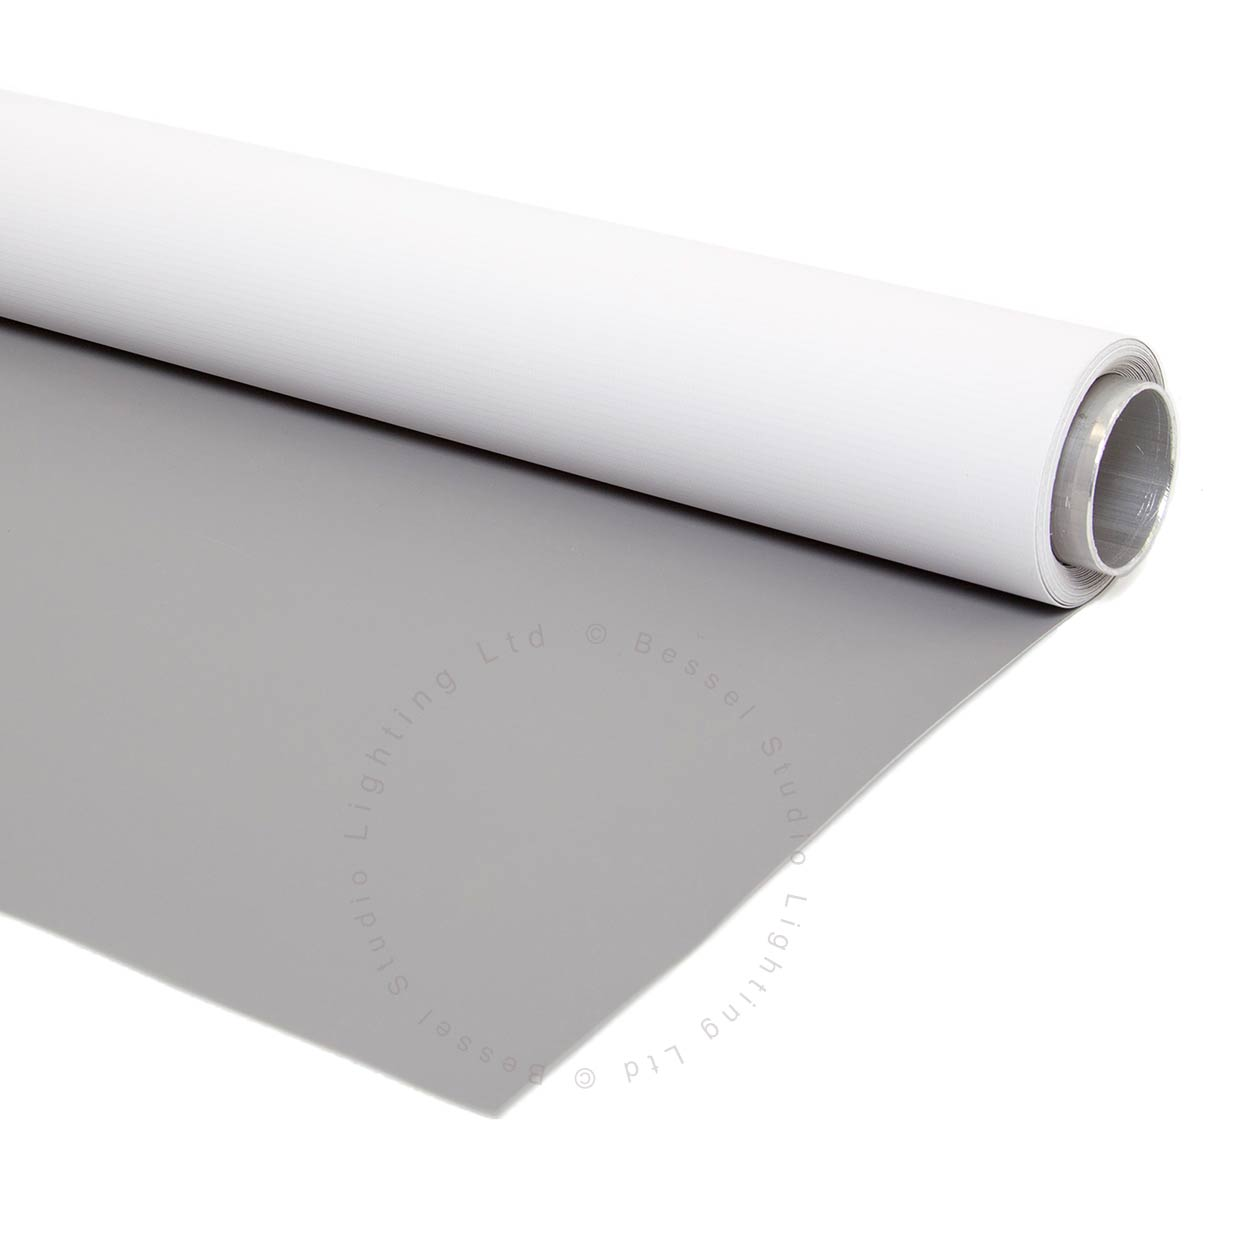 Teppiche 2m X 3m 2m X 3m Grey And White Double Sided Vinyl Background